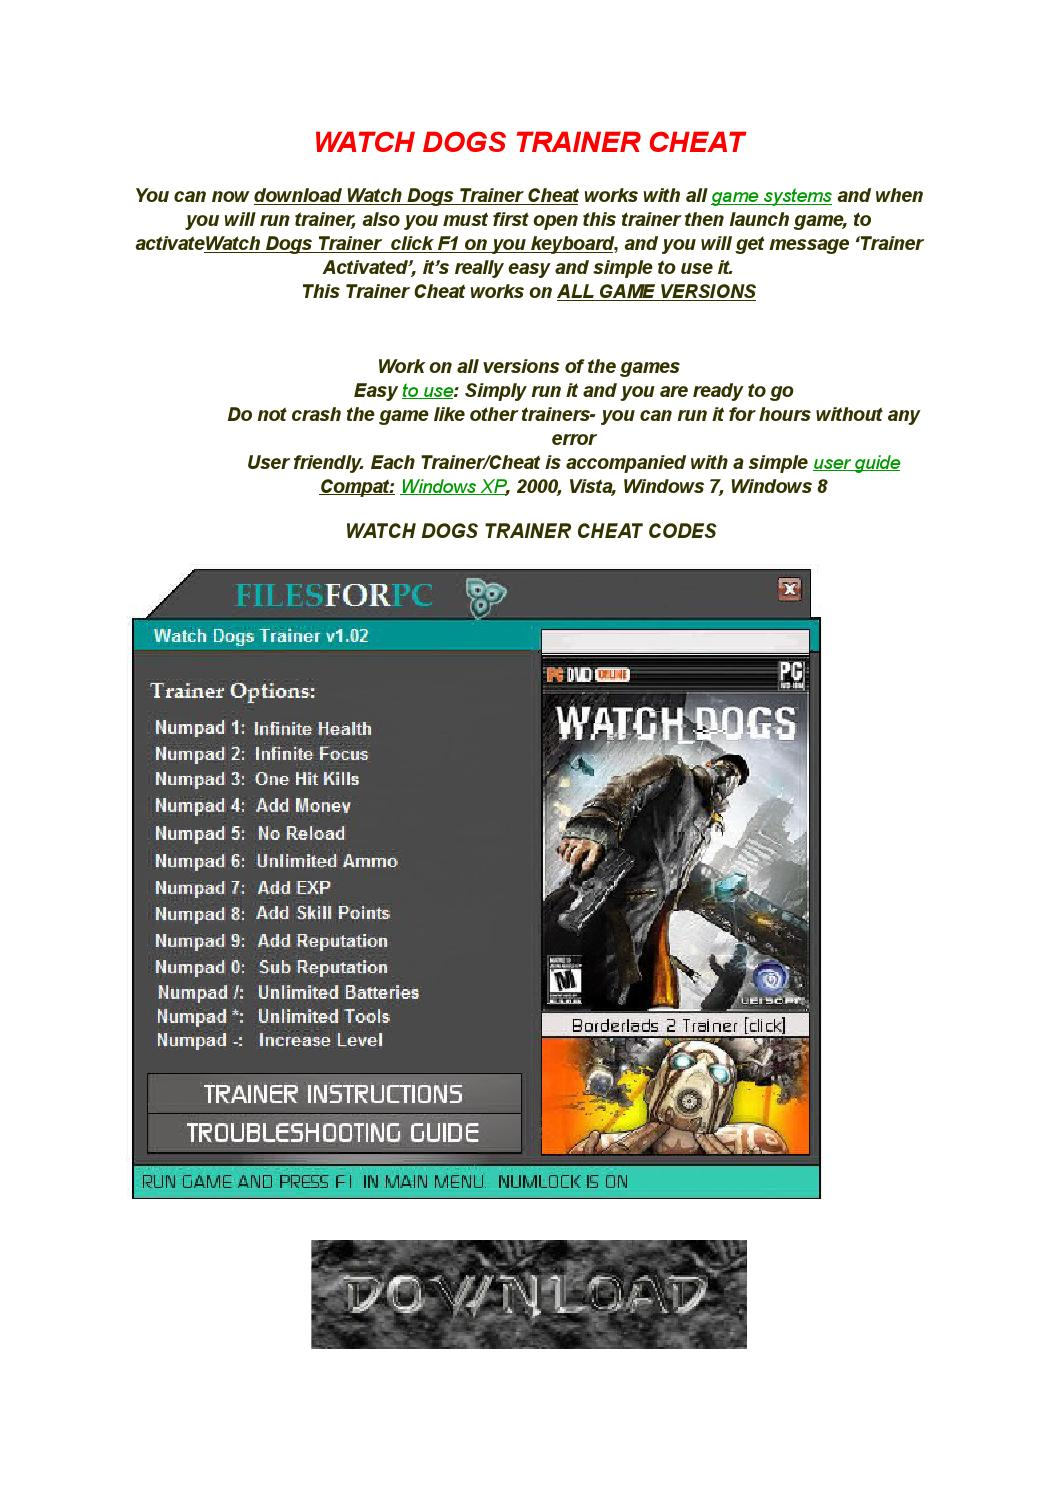 Watch dogs pc trainer cheat codes